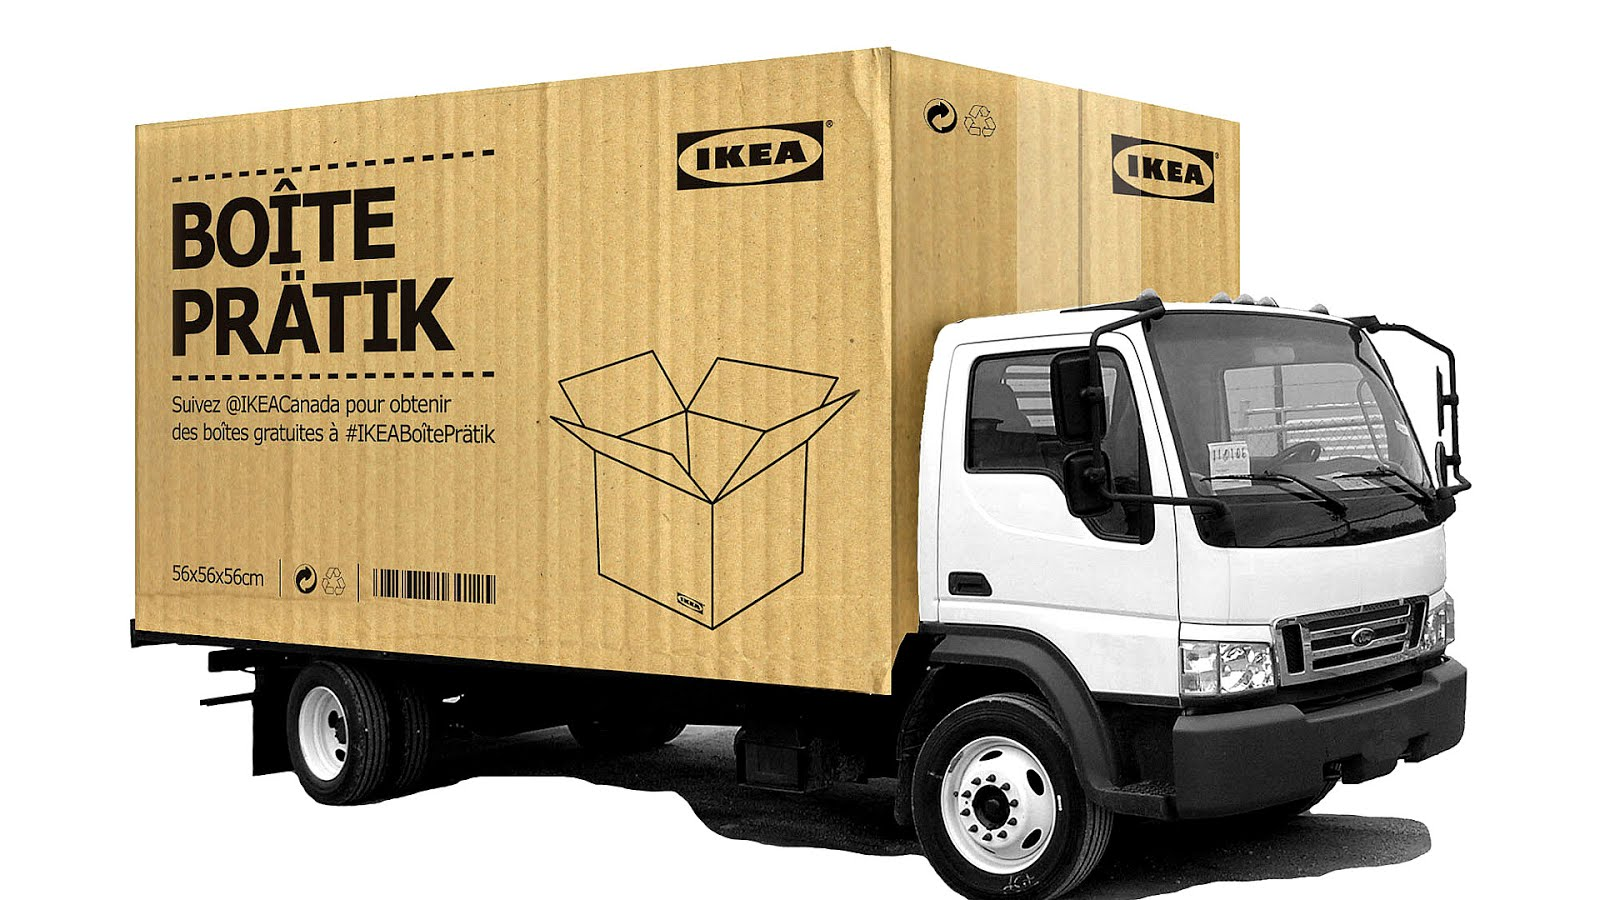 Boite À Cables Ikea ikea - ikea moving boxes - box choices